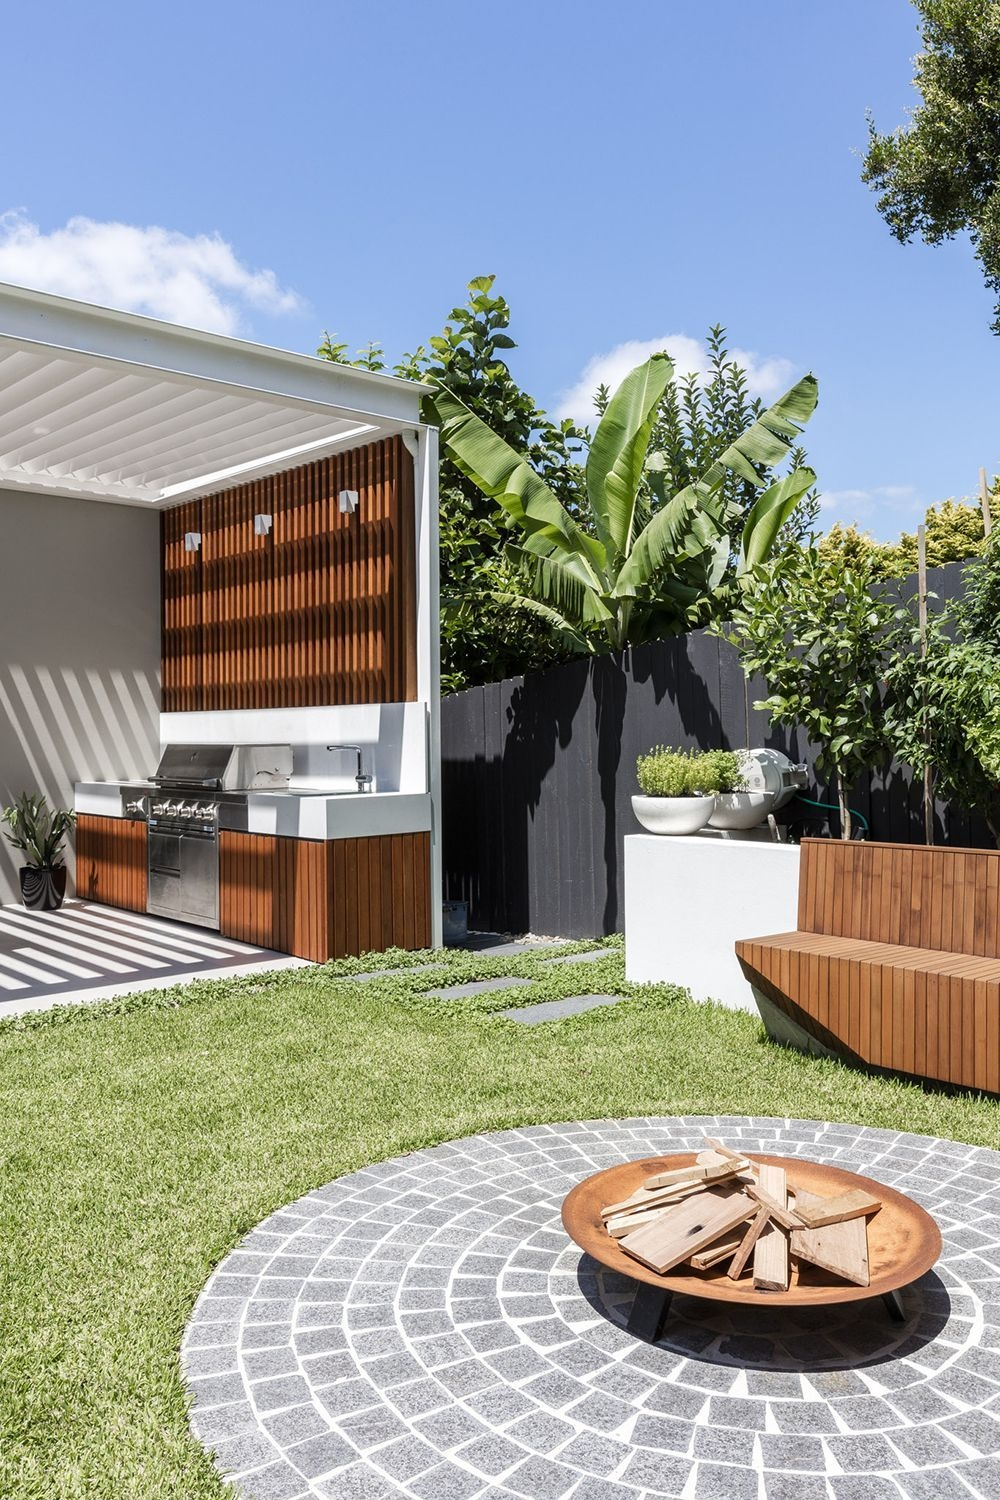 Excellent Private City Garden Design Ideas With Beach Vibes 49